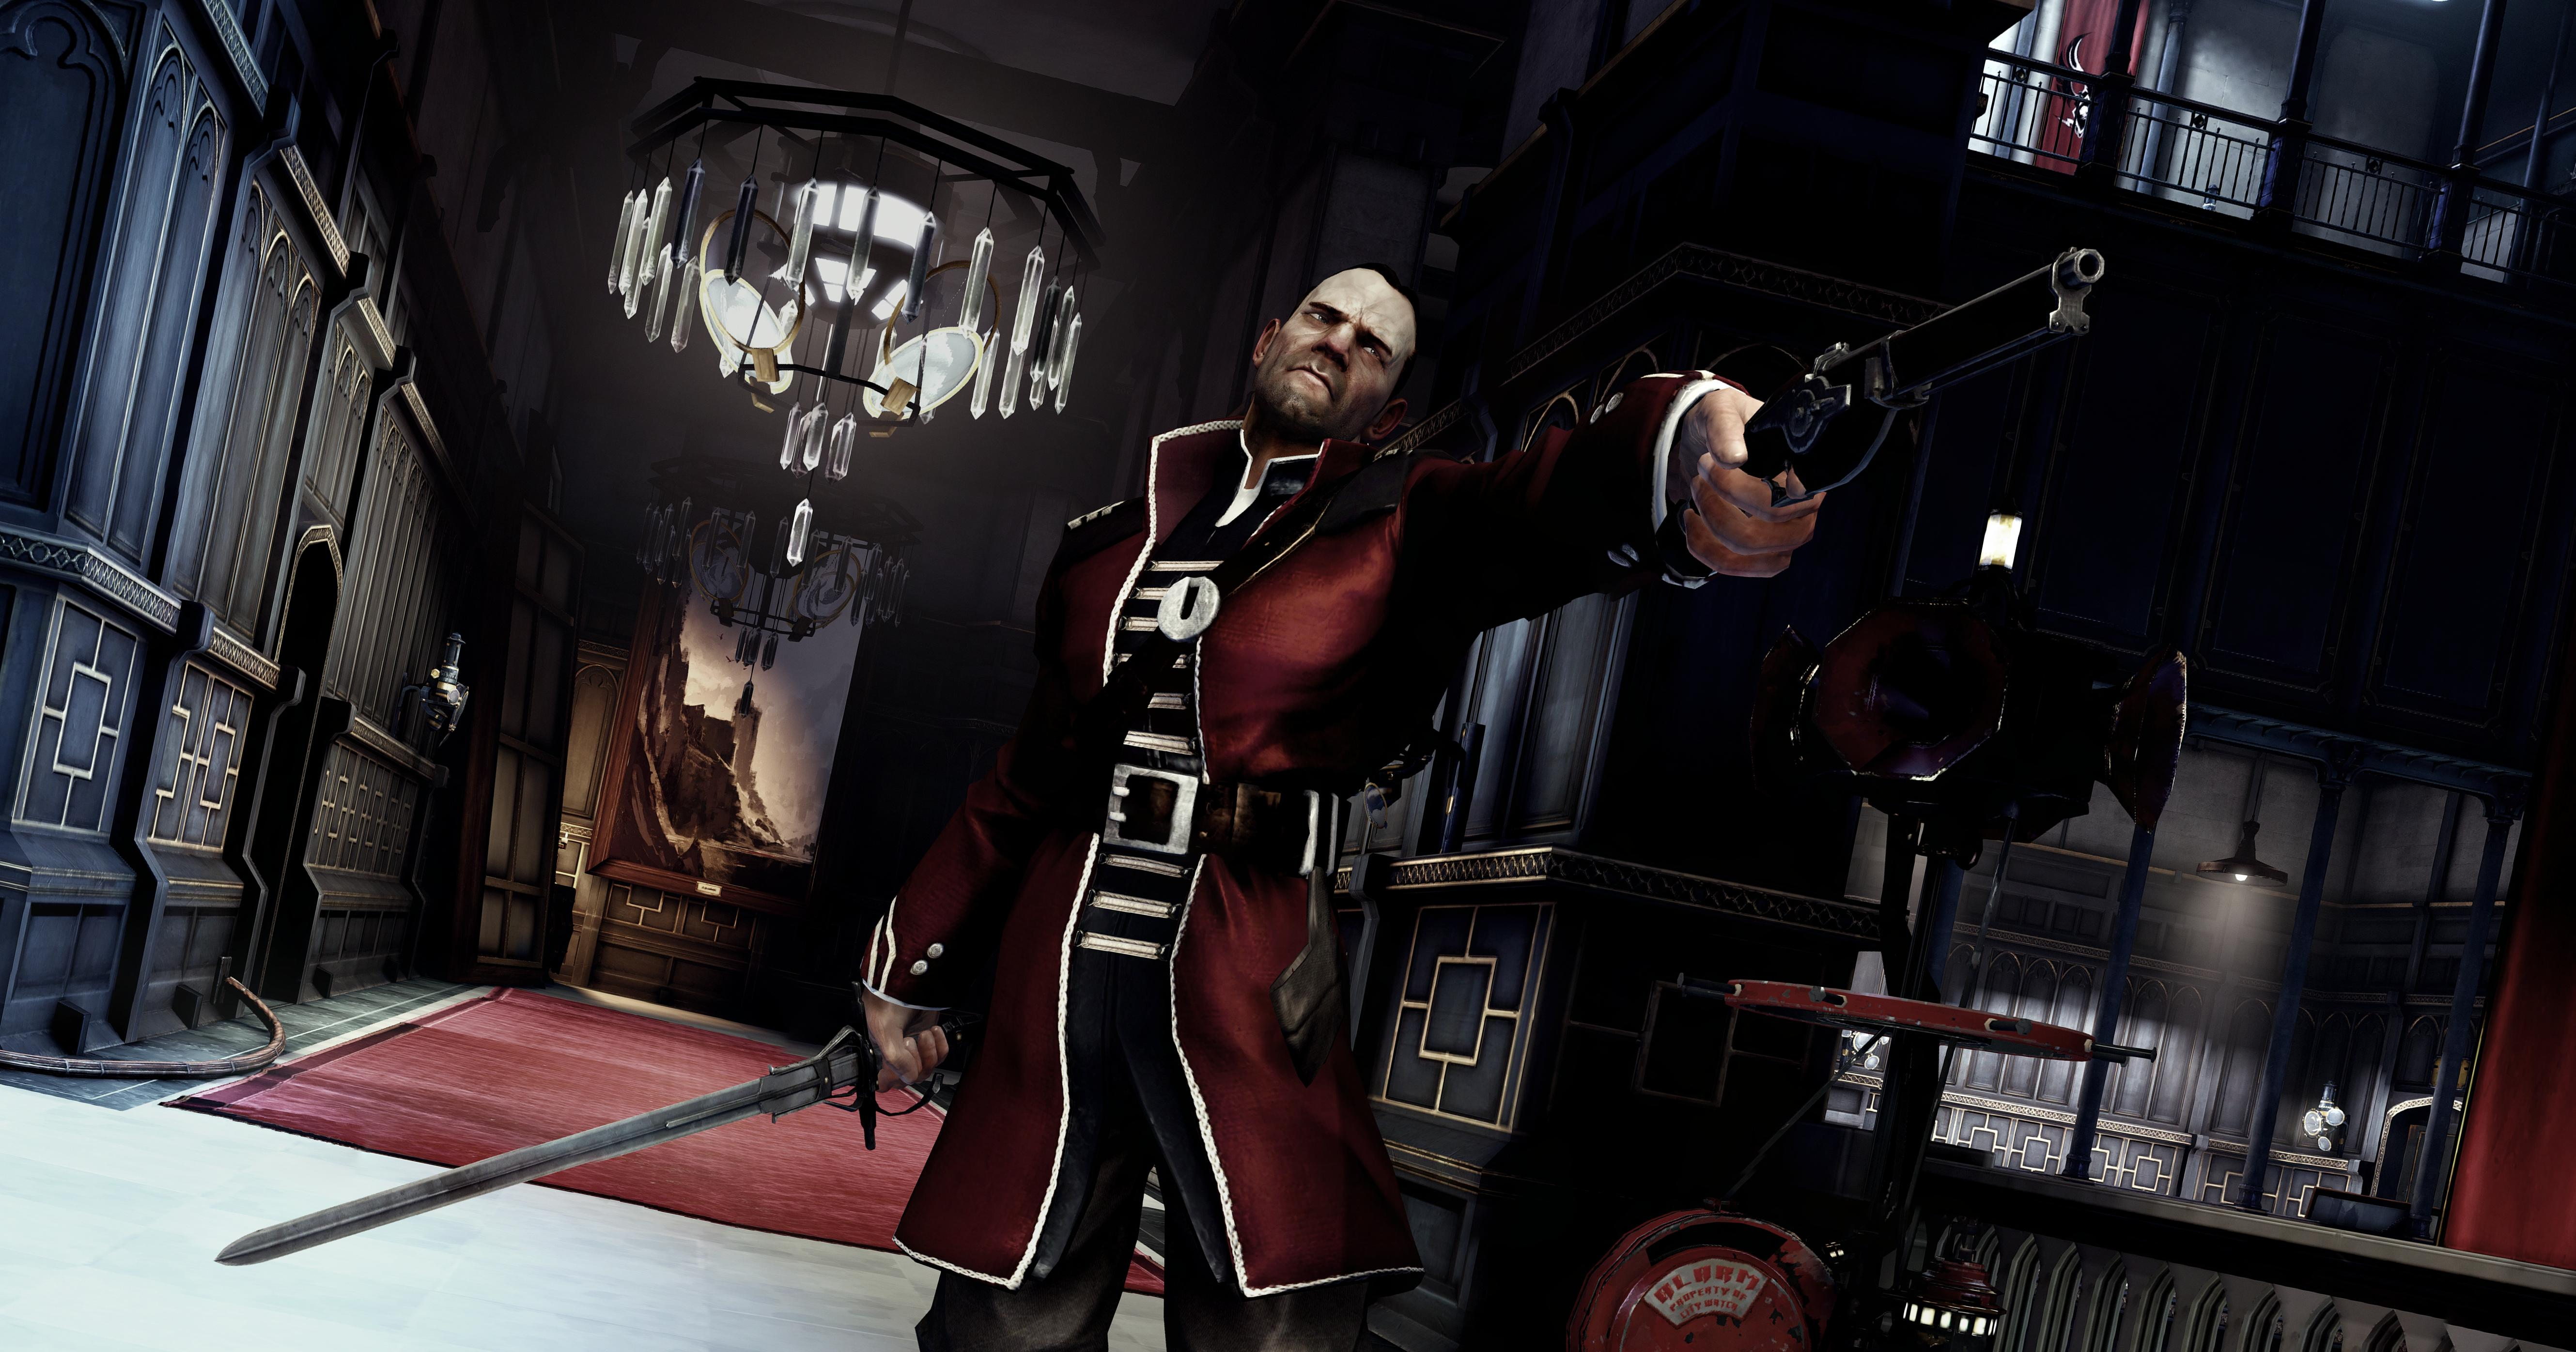 Dishonored 2 Hd Hd Games 4k Wallpapers Images